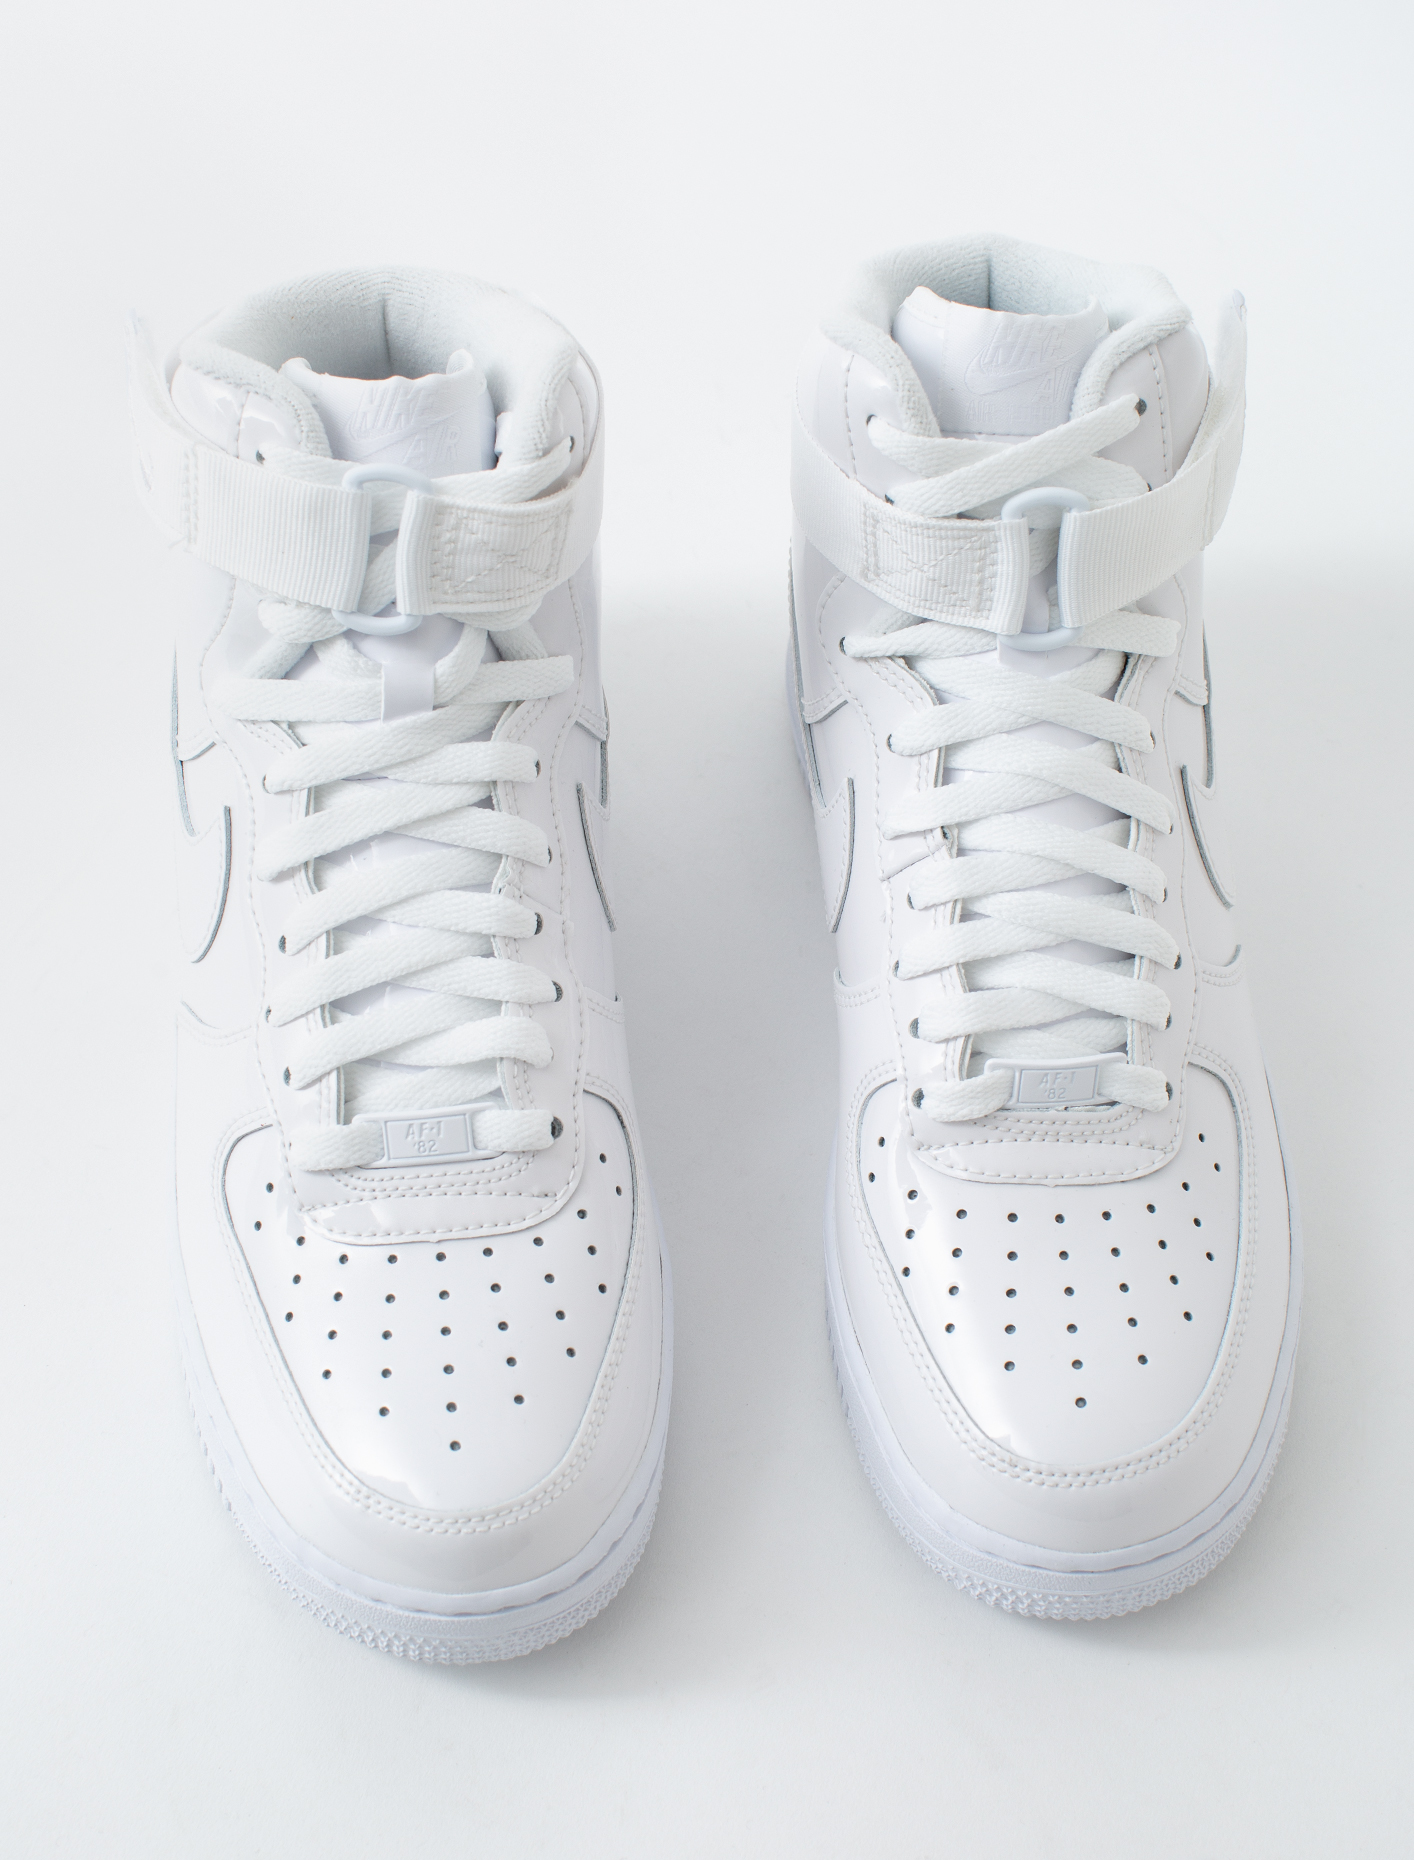 Nike Air Force 1 High Retro QS in weiss 743546 107 | everysize